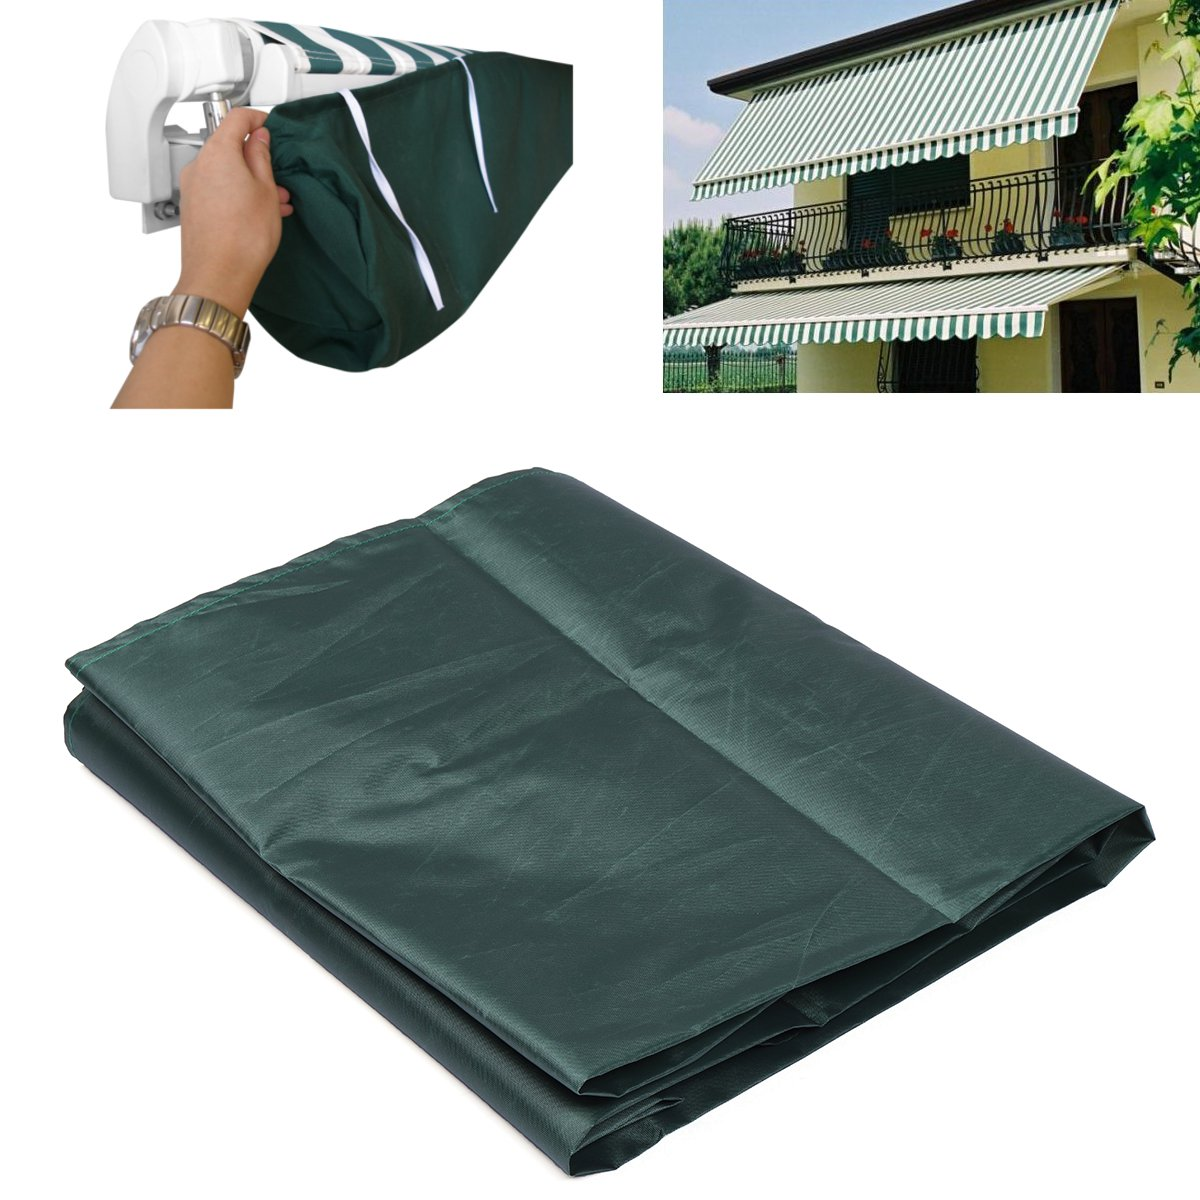 Patio Awning Storage Bag 5 Sizes Green Winter Rain Weather Cover Protector Sun Canopy Shelter Shade